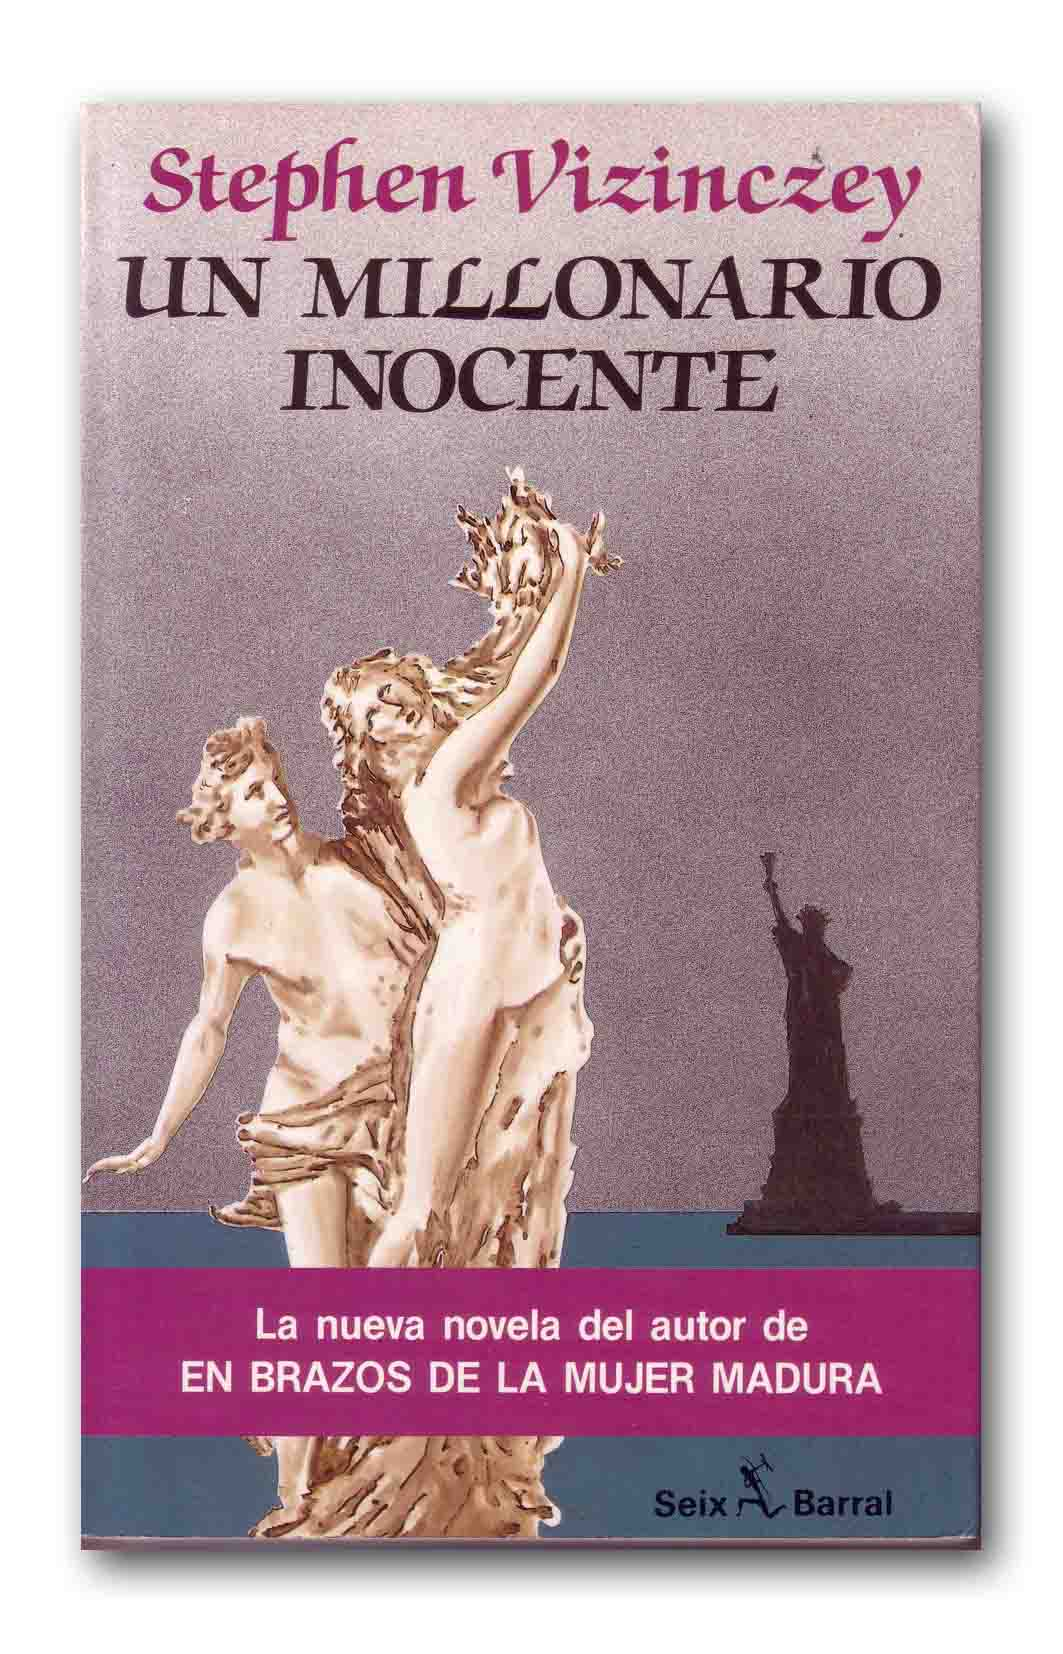 deadly innocents 1989